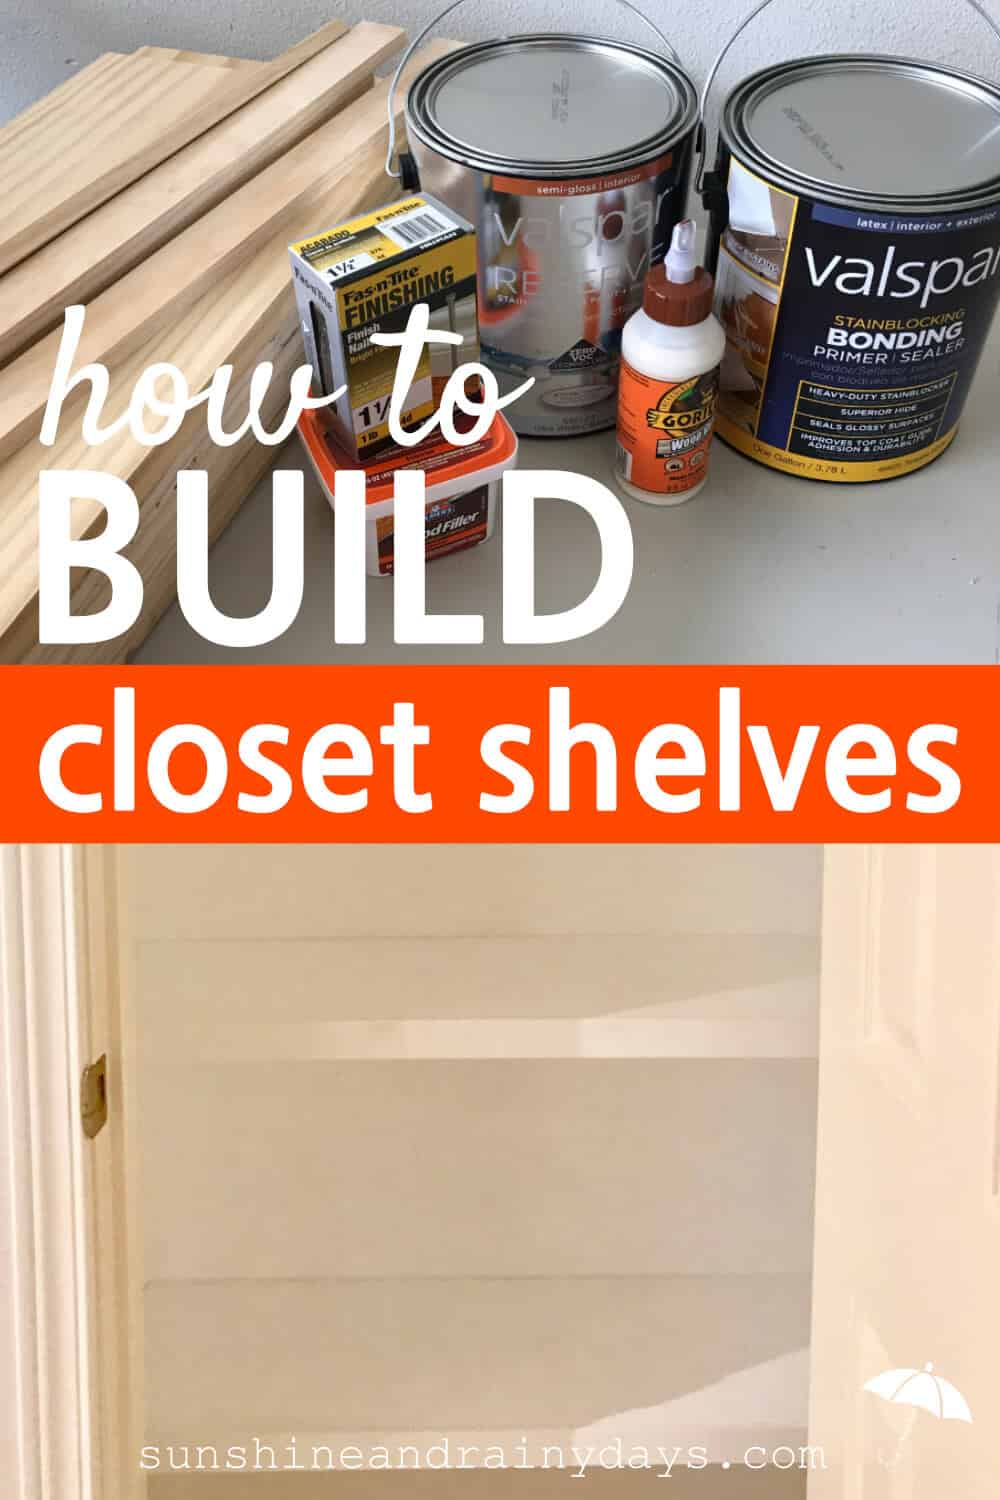 We recently visited The Street Of Dreams and I noticed the homes had custom made closets. I had to learn How To Build Closet Shelves!